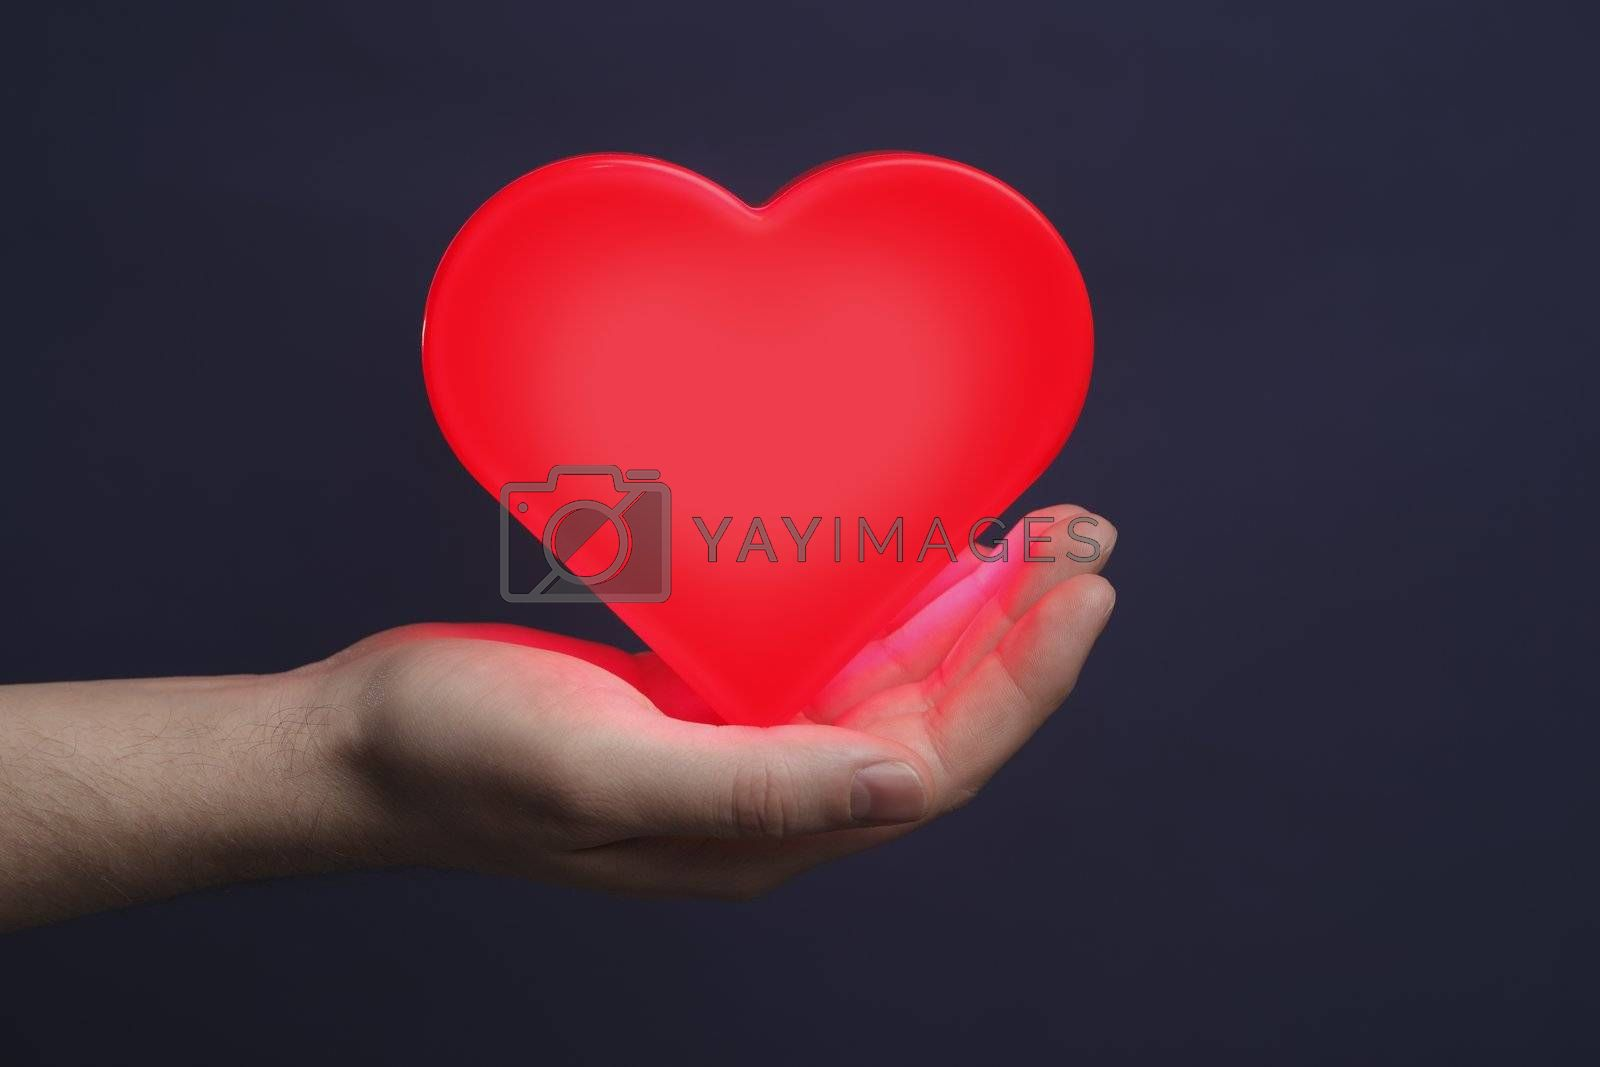 Man holding a red glowing heart on his palm.